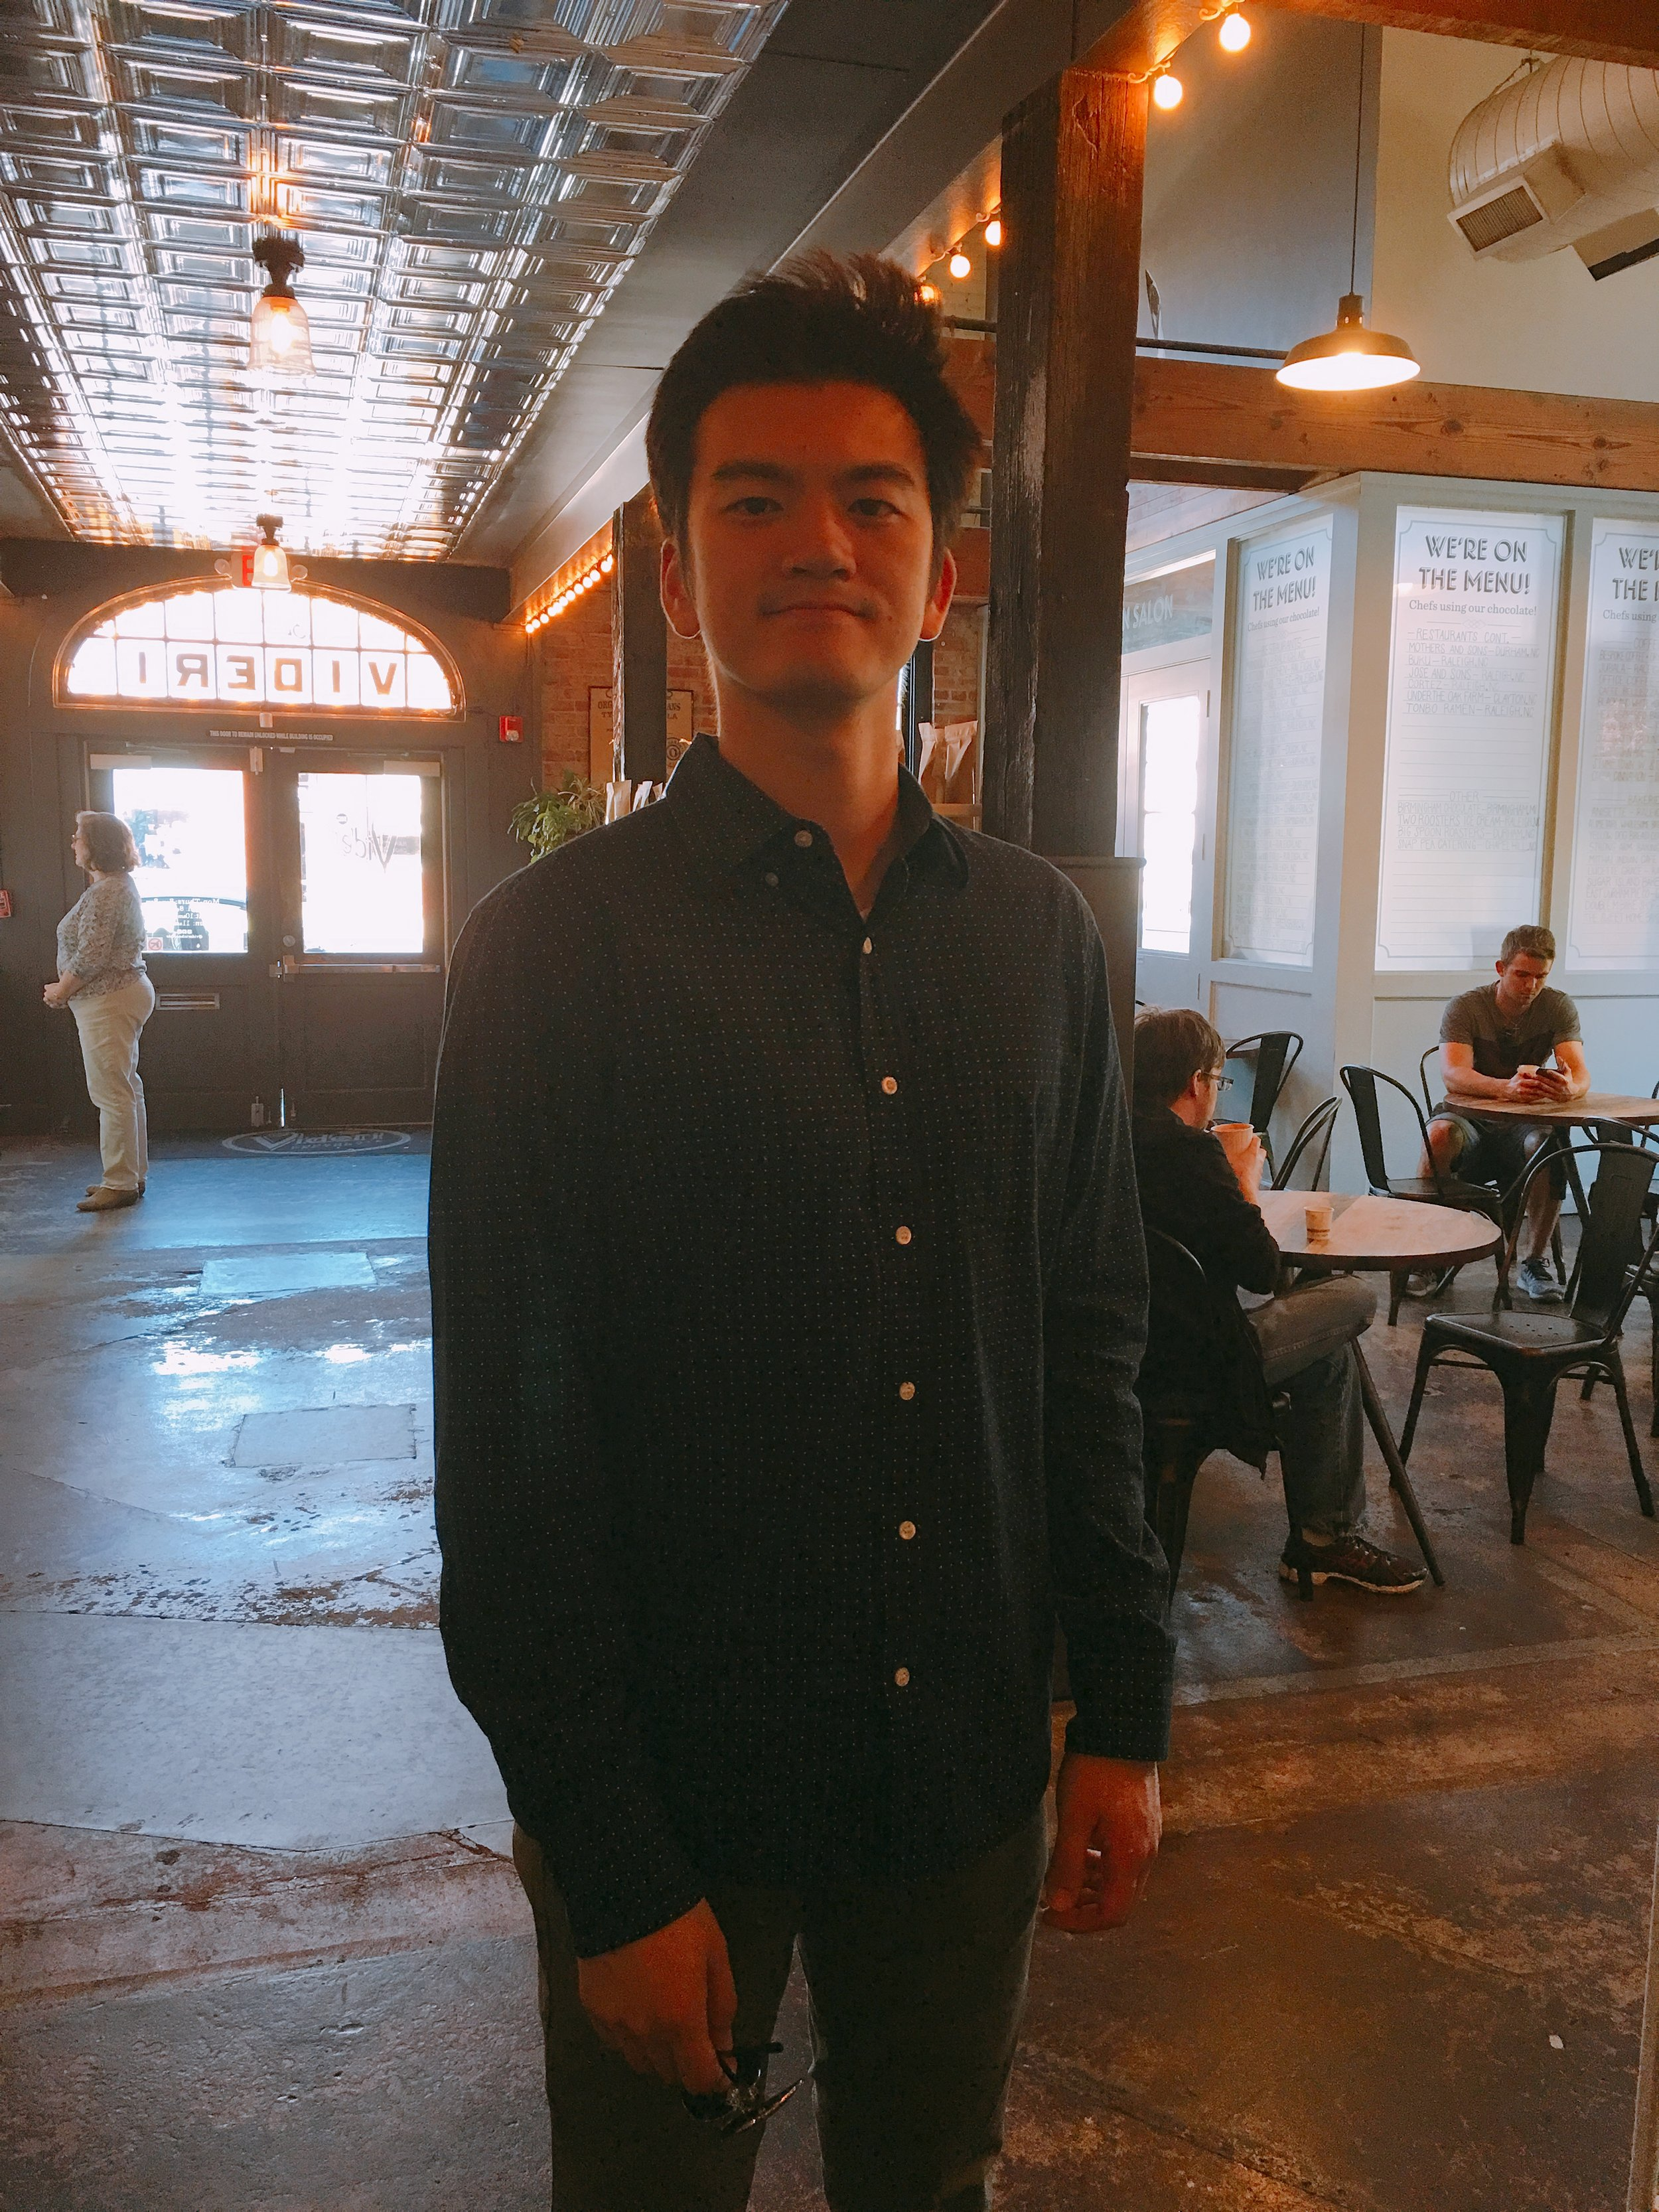 Leo Hu, Vice President of Internal Relations - Leo grew up in Shanghai, China. He studied economics at Northwestern University and worked as a paralegal in an immigration law firm in Ann Arbor, MI. Leo likes to spend his spare time exercising, searching for fine dishes, and exploring national parks.1L Summer: United States District Court at the Southern District of New York - New York, NY